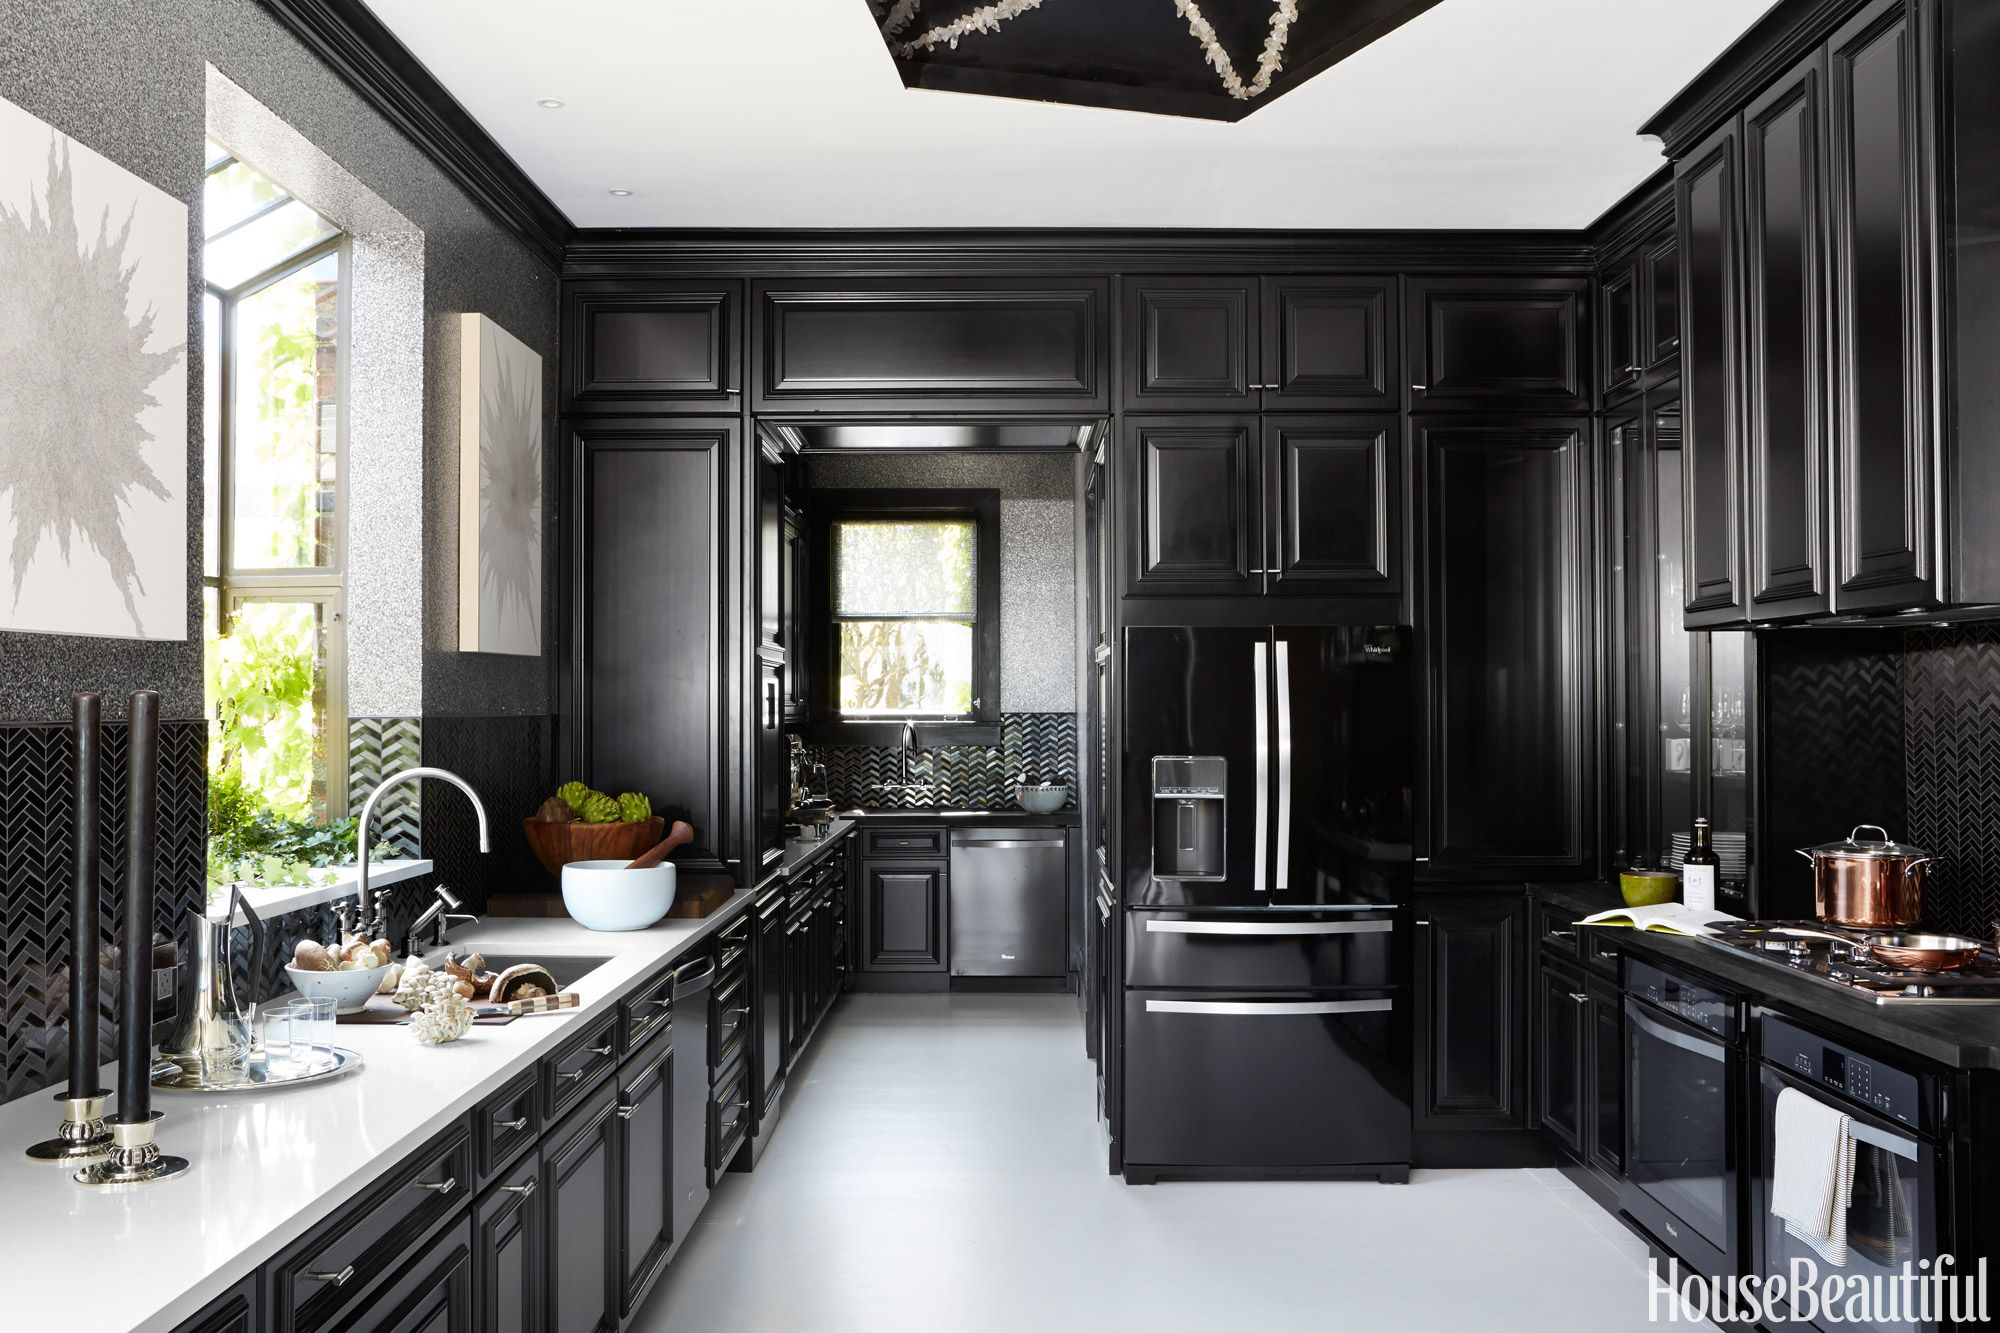 Kitchen paint colors with black cabinets - Kitchen Paint Colors With Black Cabinets 12